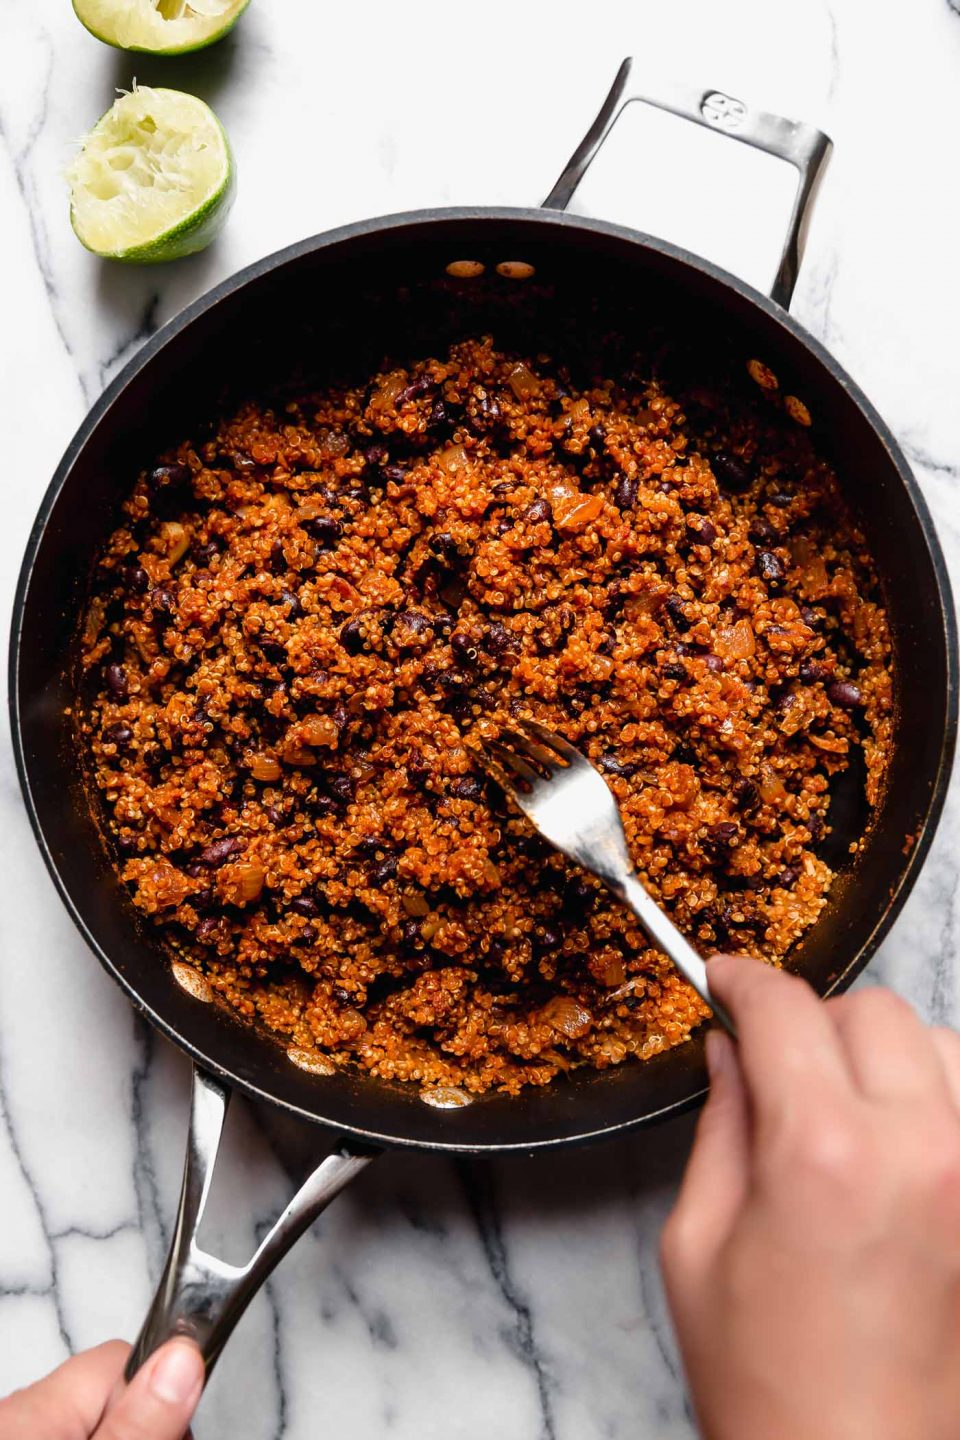 Hand reaching into the photo fluffing cooked quinoa & black bean taco filling (vegetarian taco meat) with a fork. The skillet is placed on a marble surface, with a few spent lime halves surrounding it.